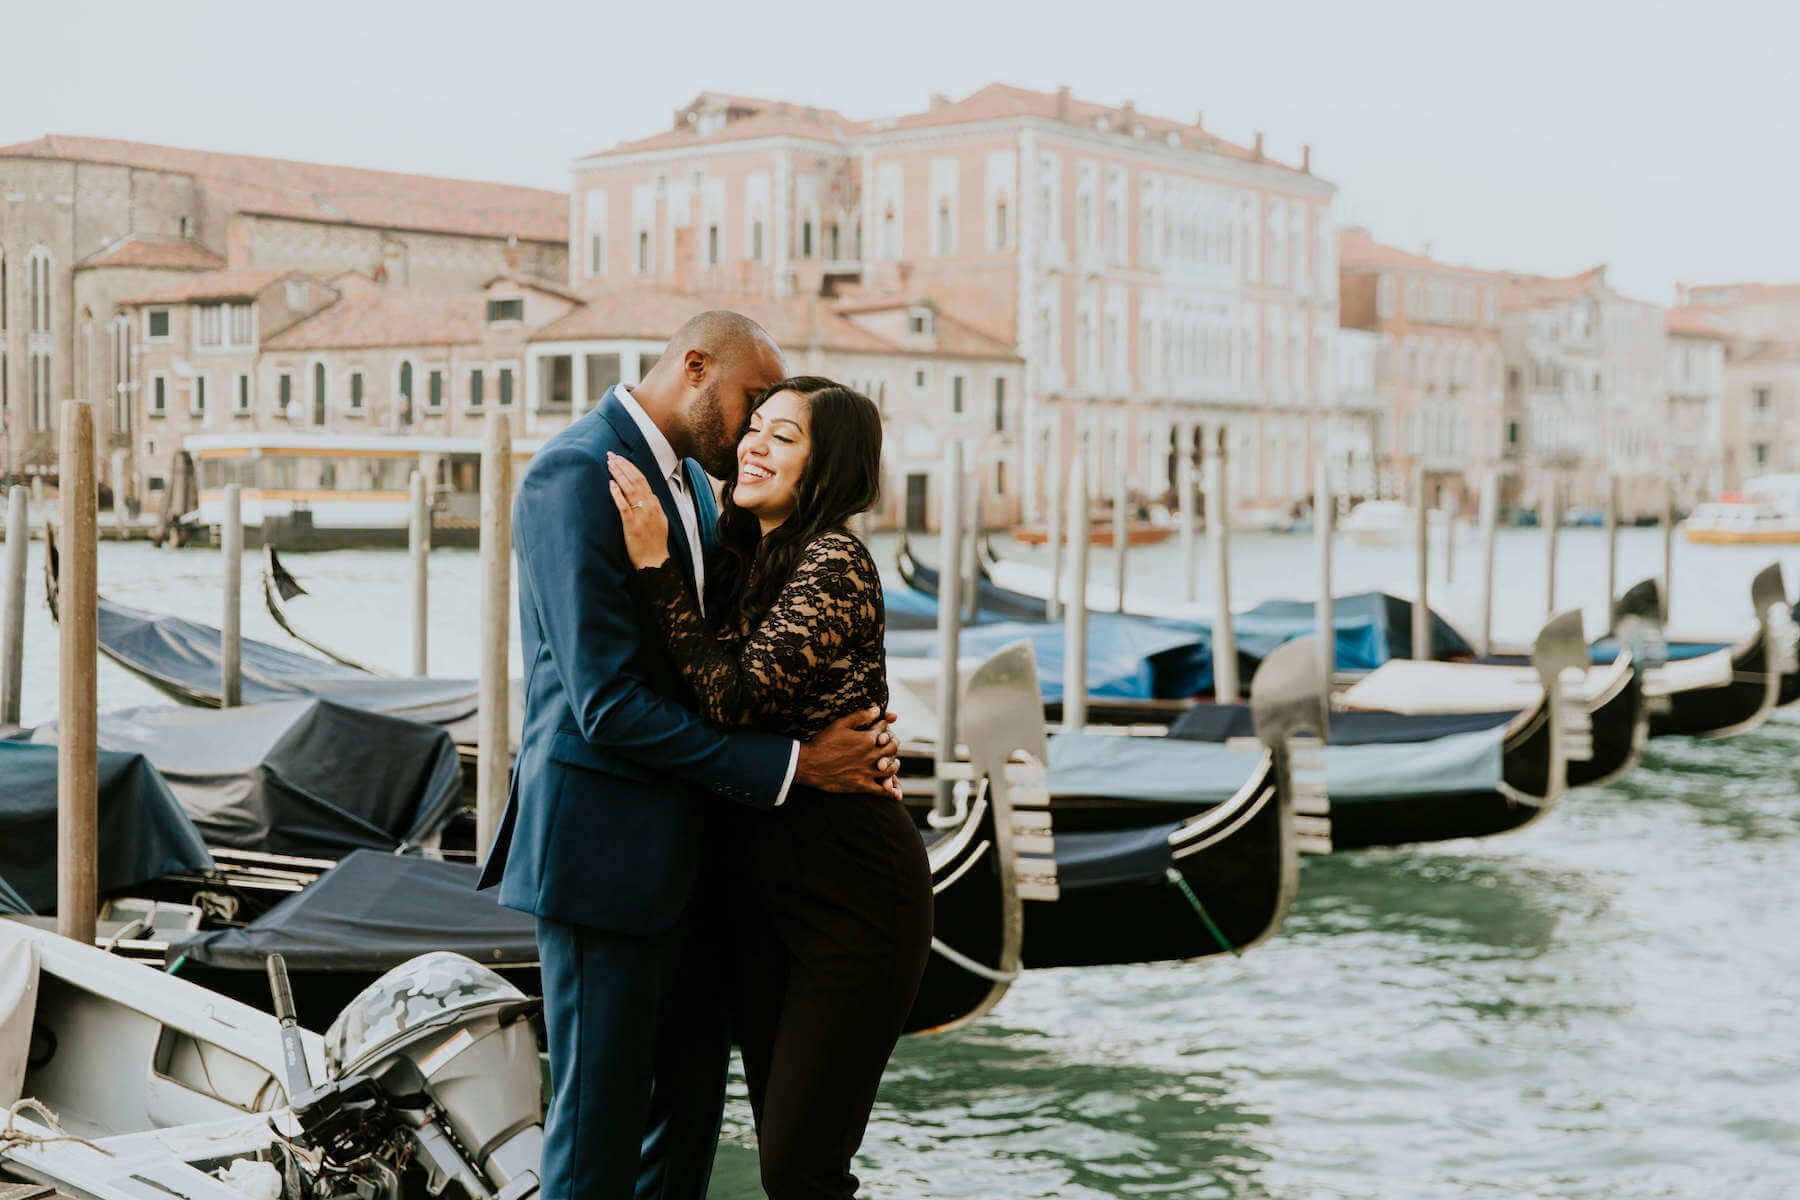 couple holding each other, the man is giving the lady a kiss in Venice, Italy